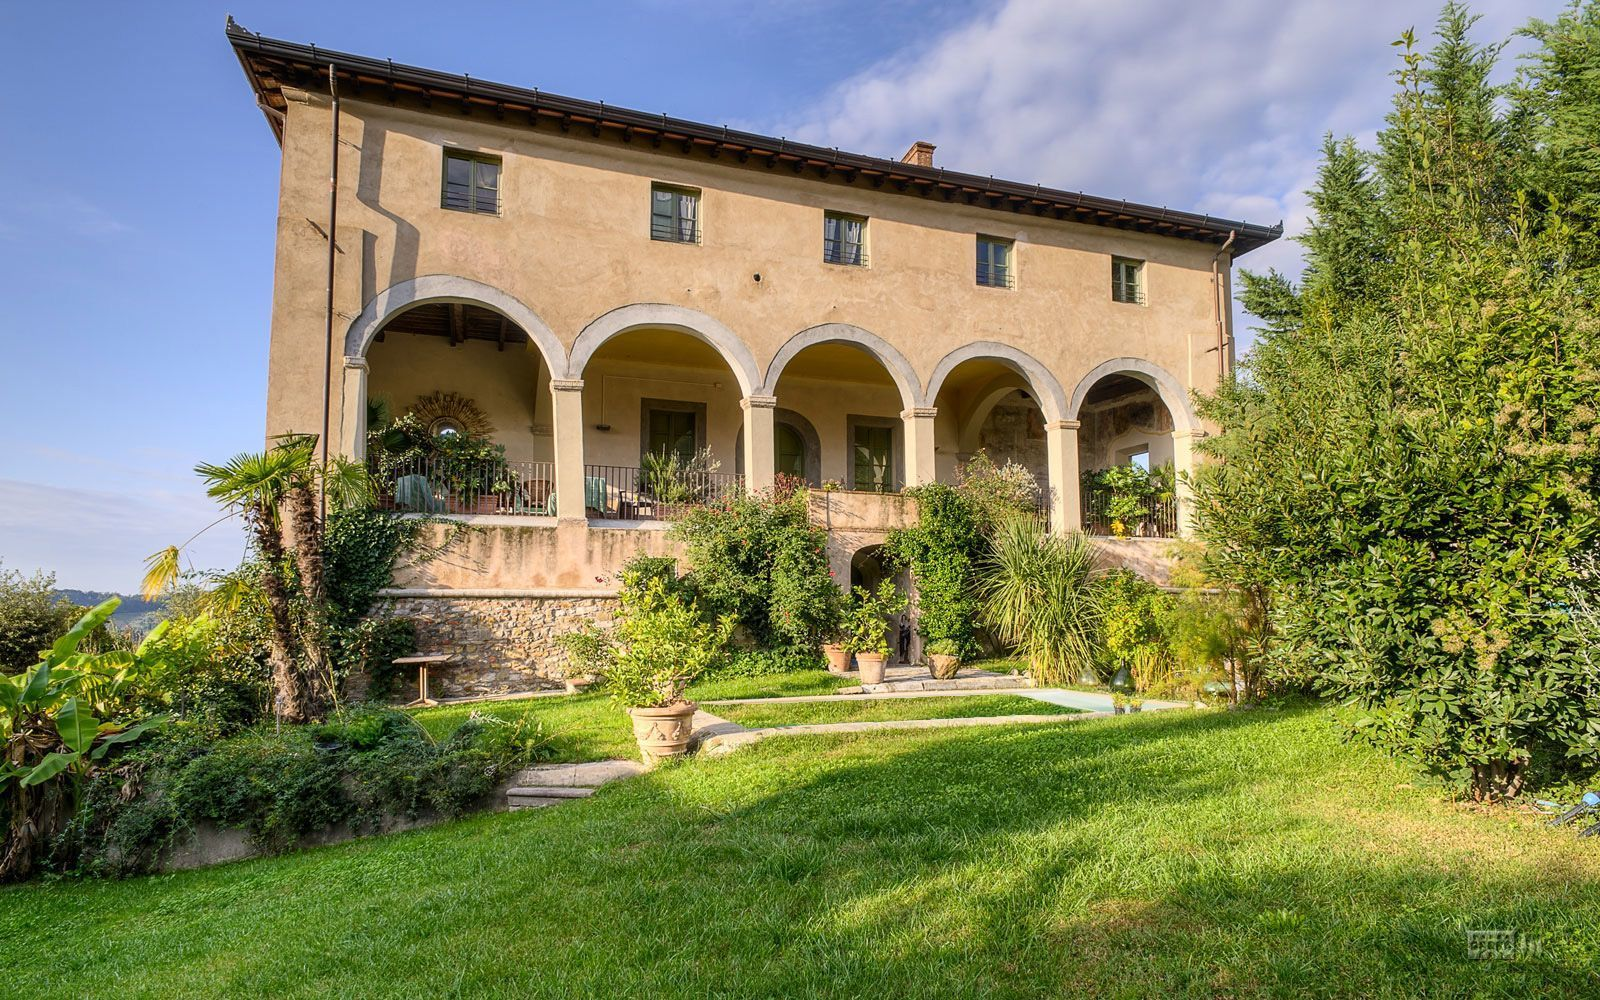 lucca villa vacation rental villa del giglio that sleeps 20 people